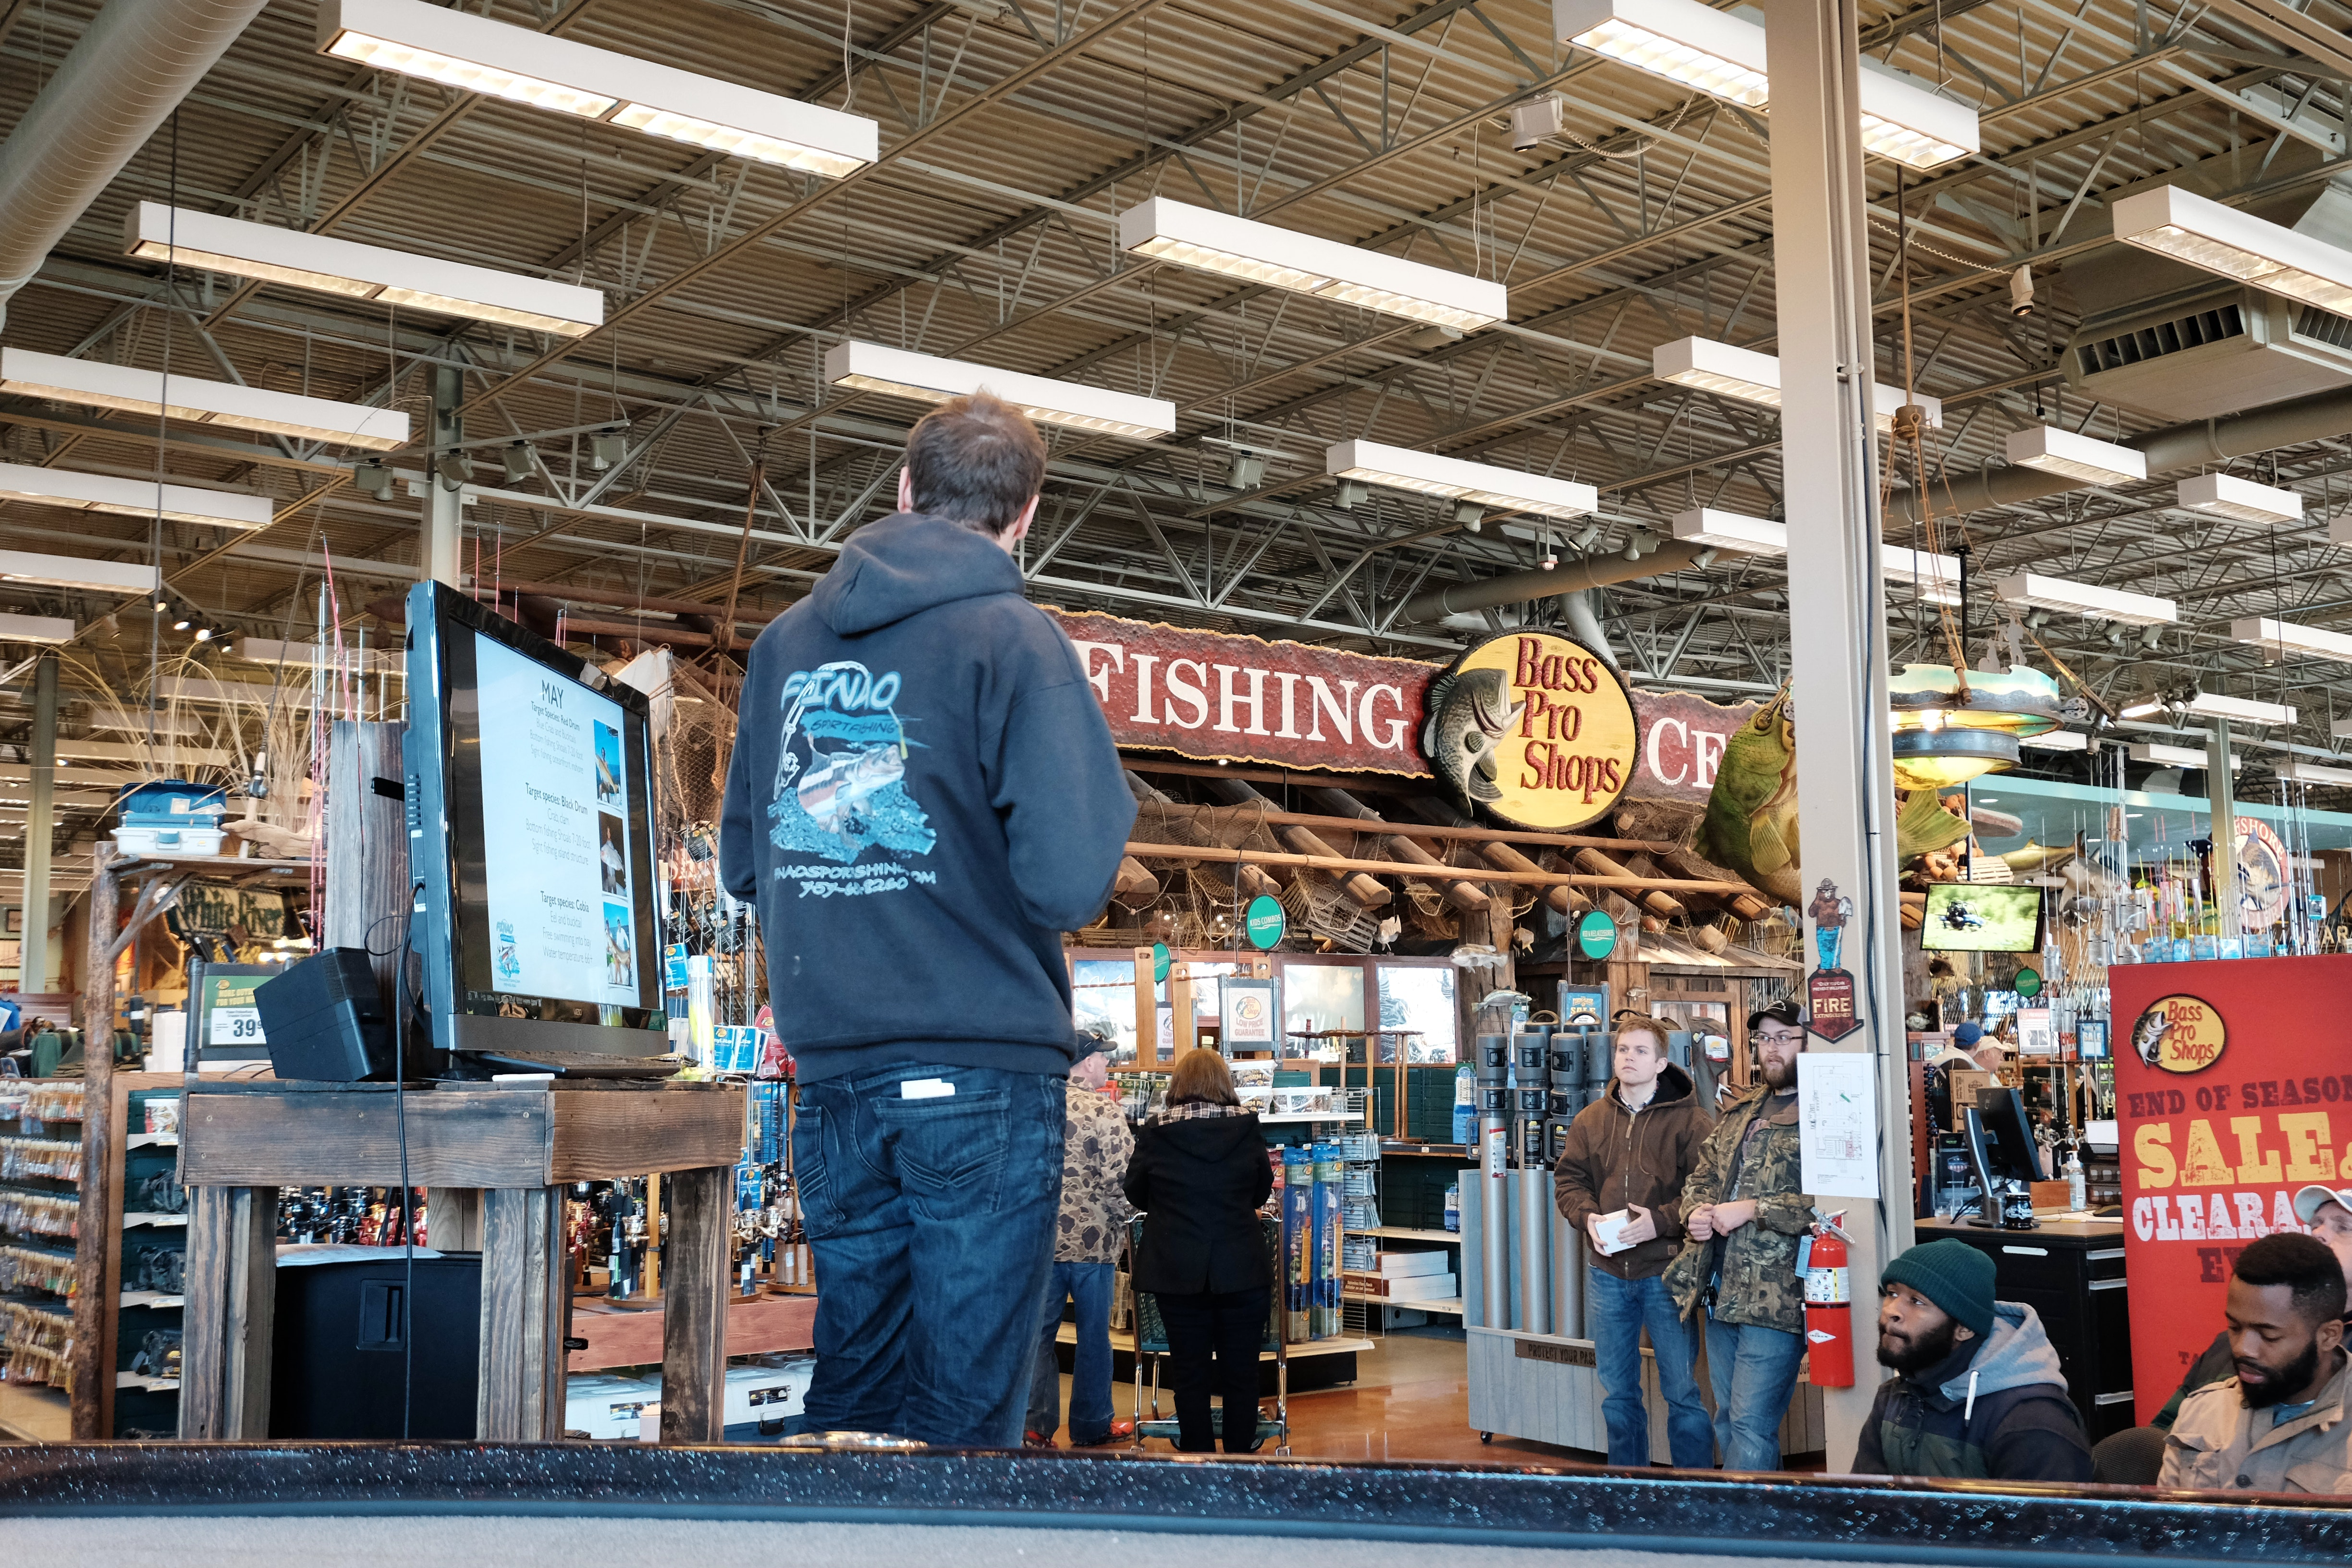 An audience listens to Austin Hayne's fishing presentation